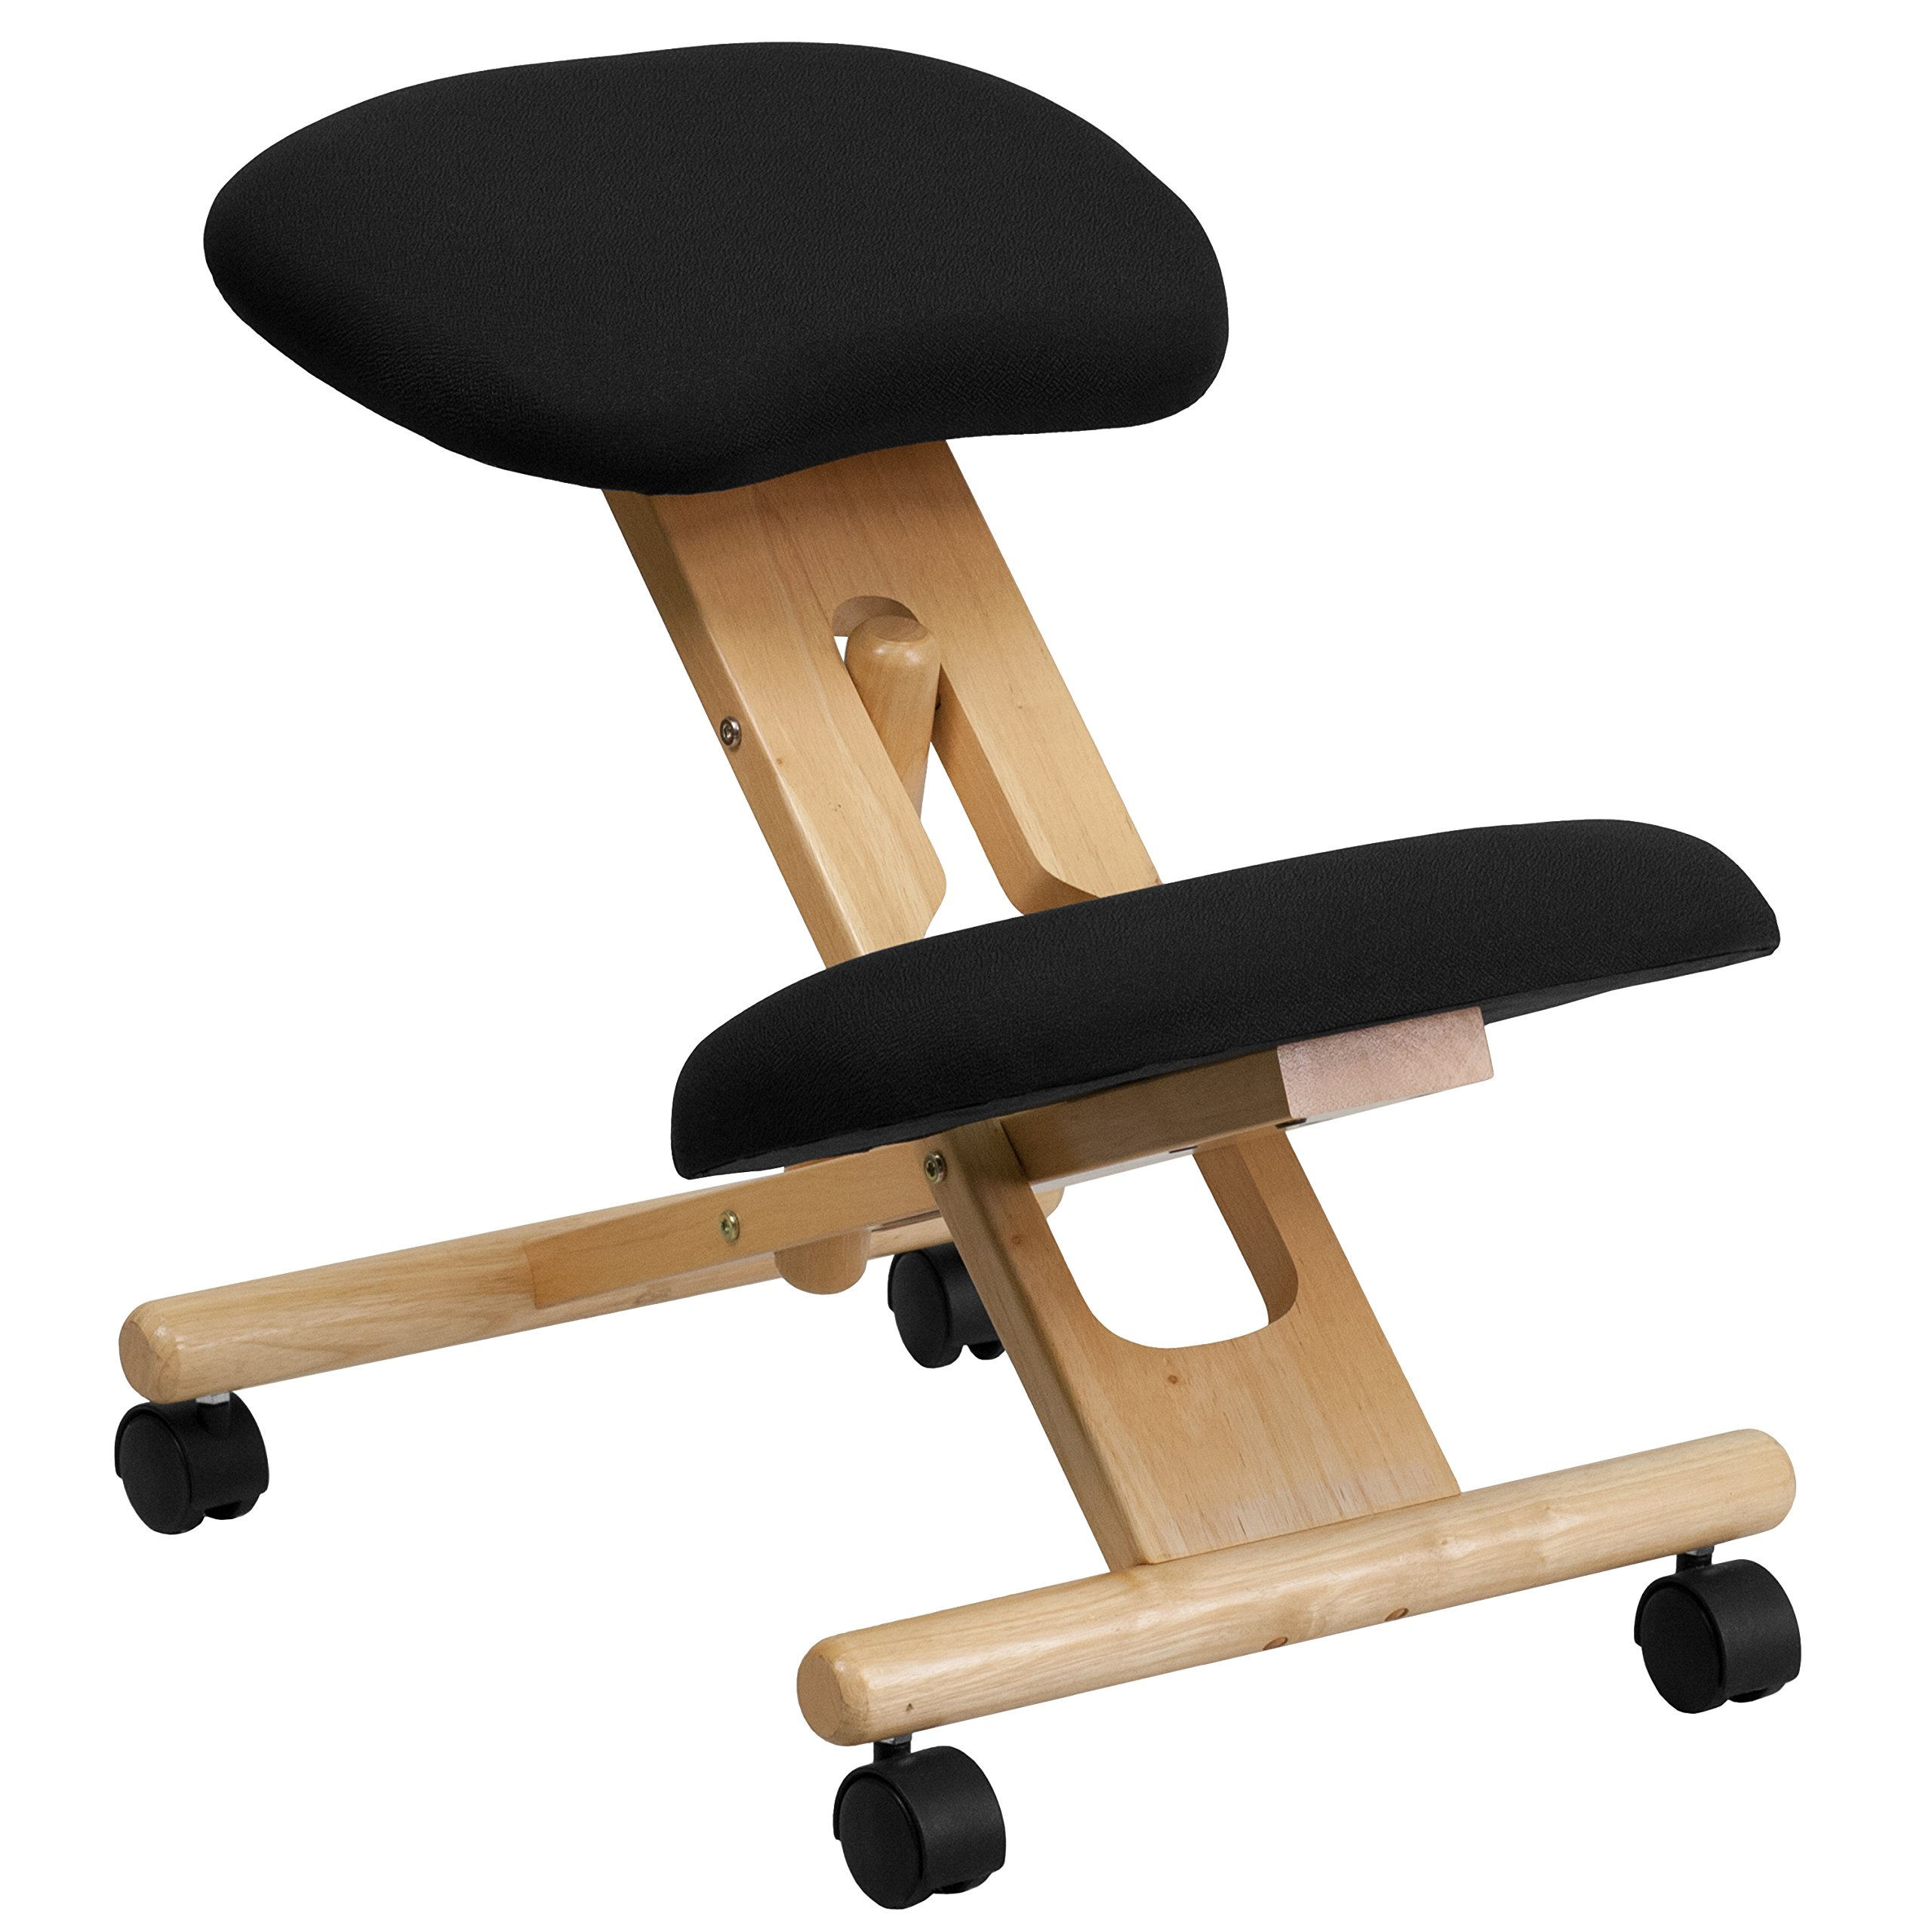 My Friendly Office MFO Mobile Wooden Ergonomic Kneeling Chair in Black Fabric by My Friendly Office